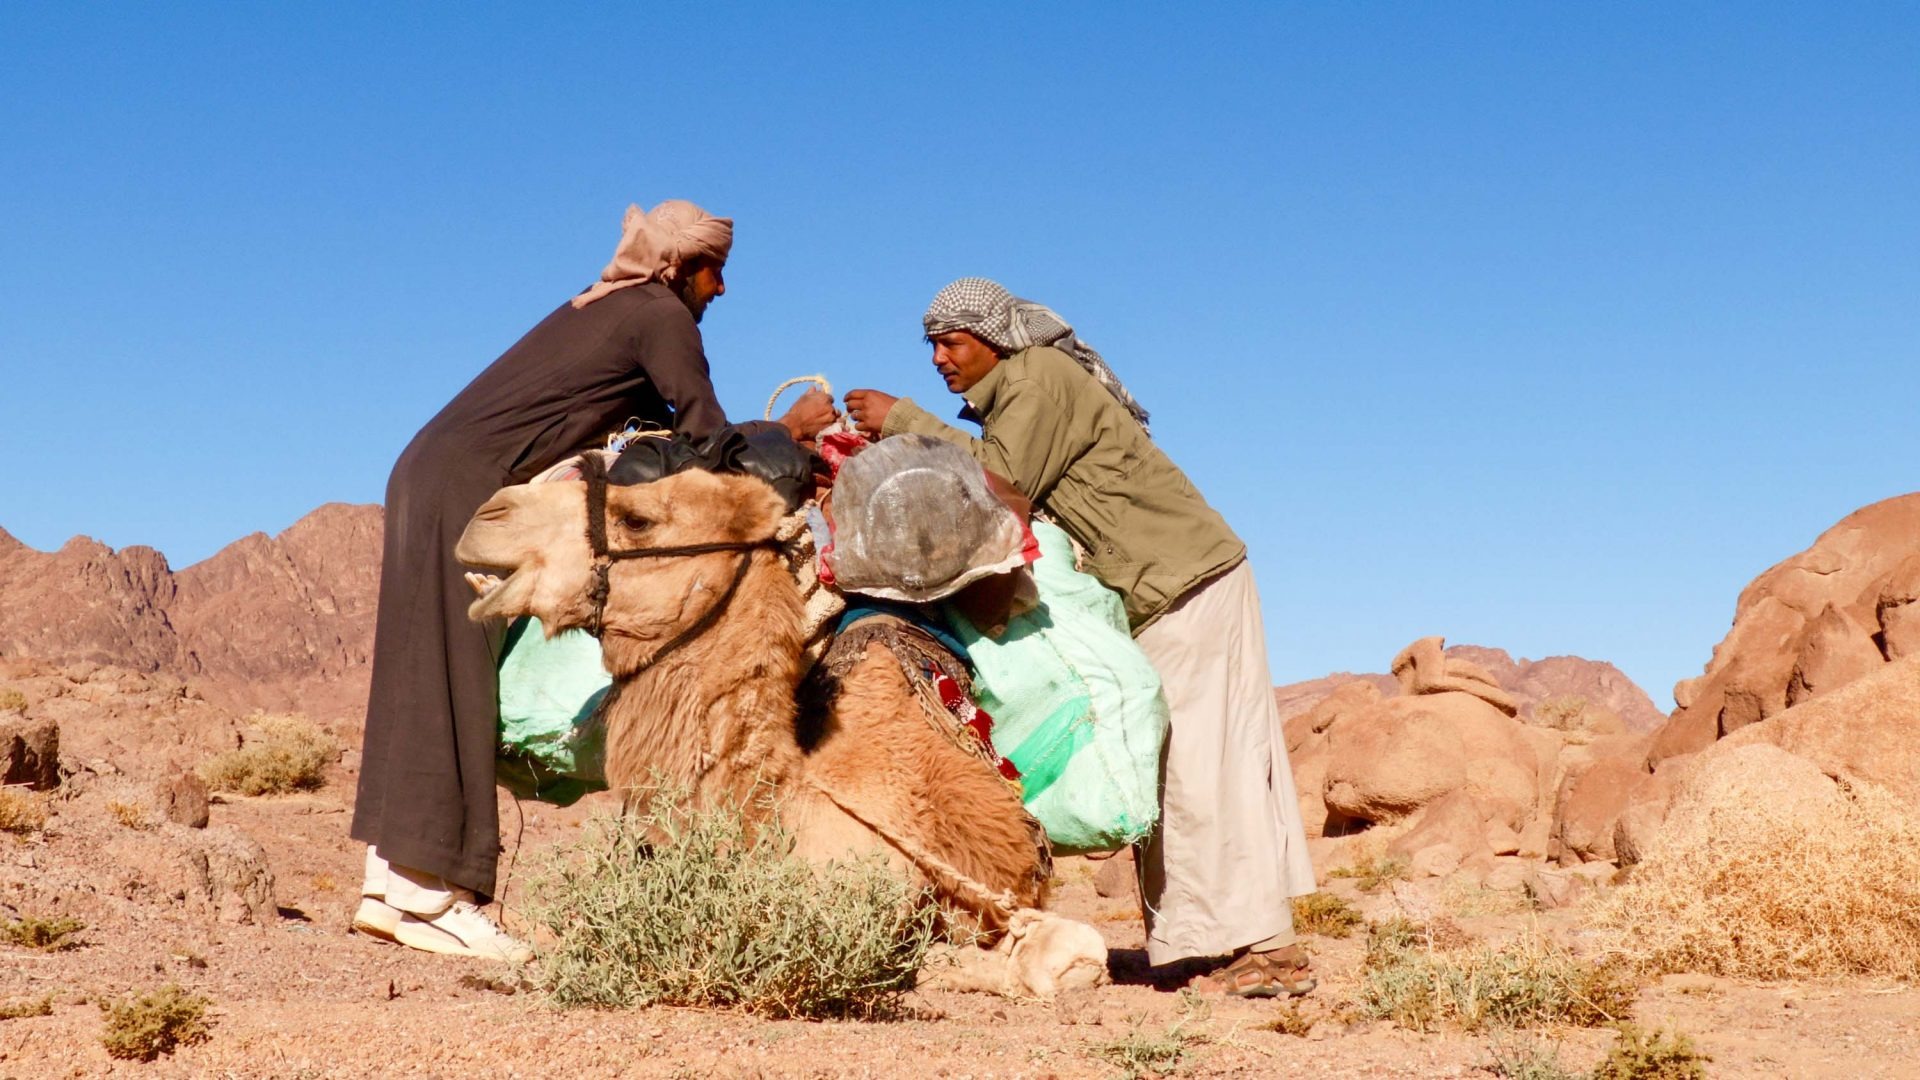 Harboush the camel is loaded up for the day.